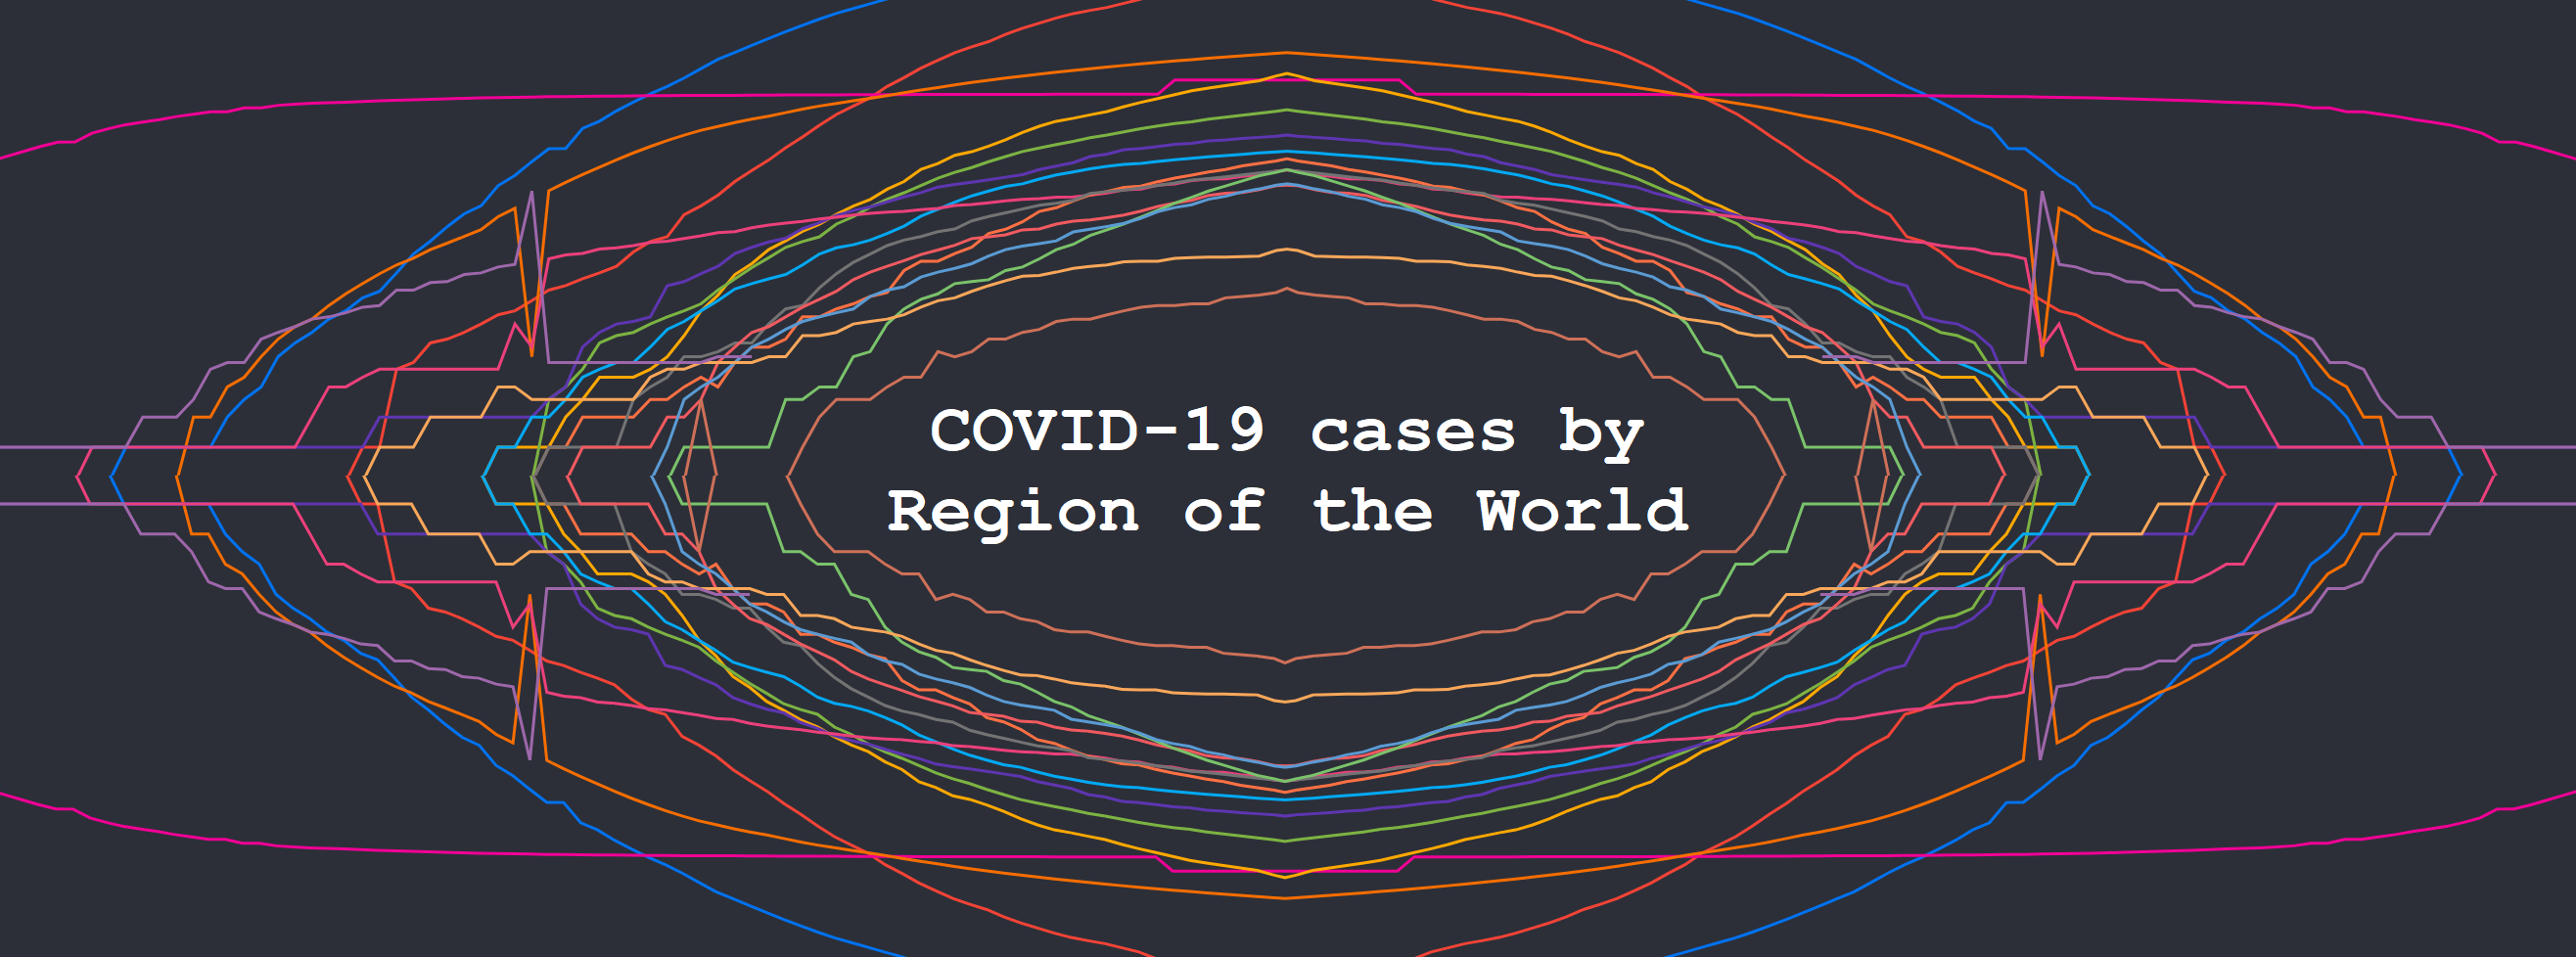 COVID-19 by Region of the World